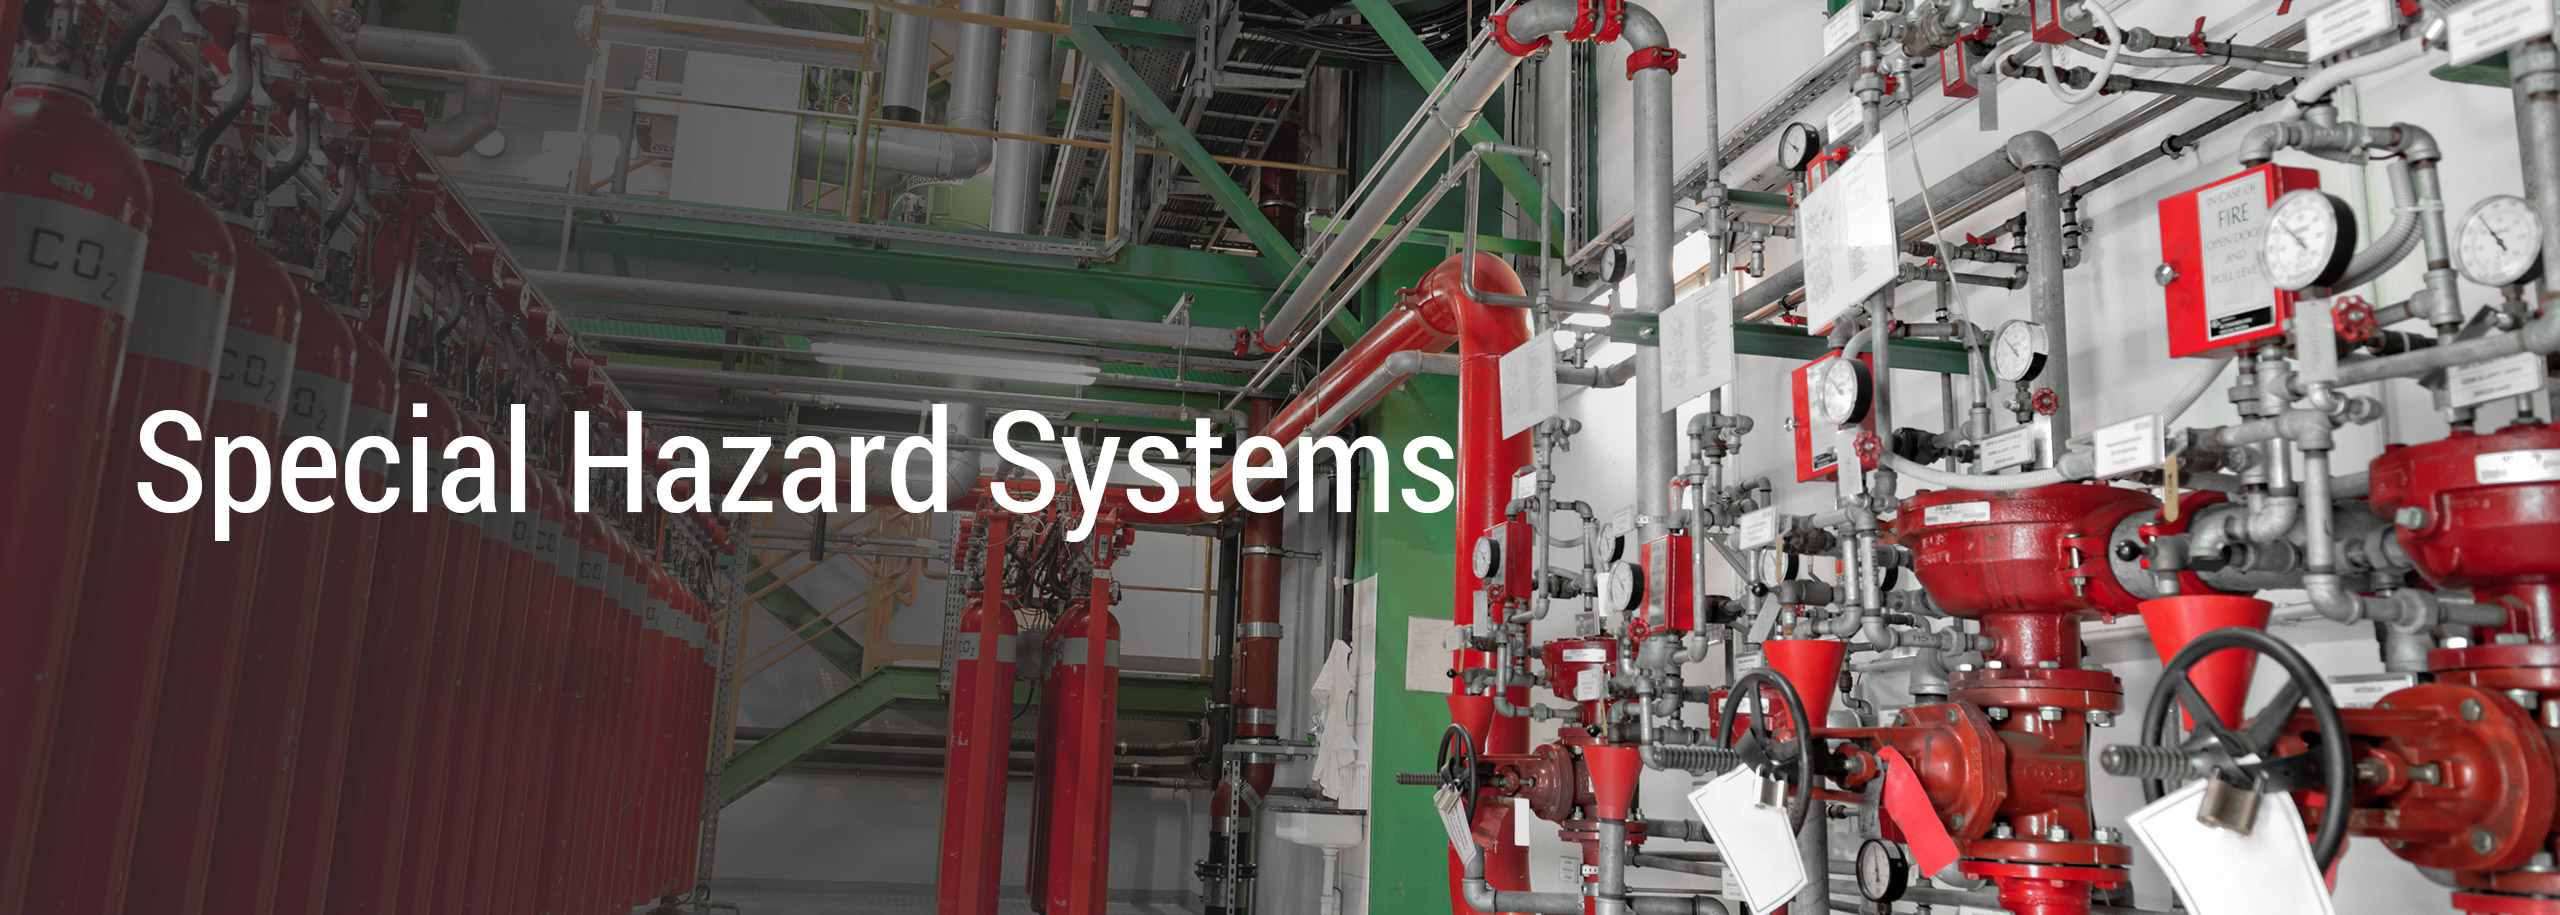 Fire Protection Systems Commercial Fire Alarms Phoenix